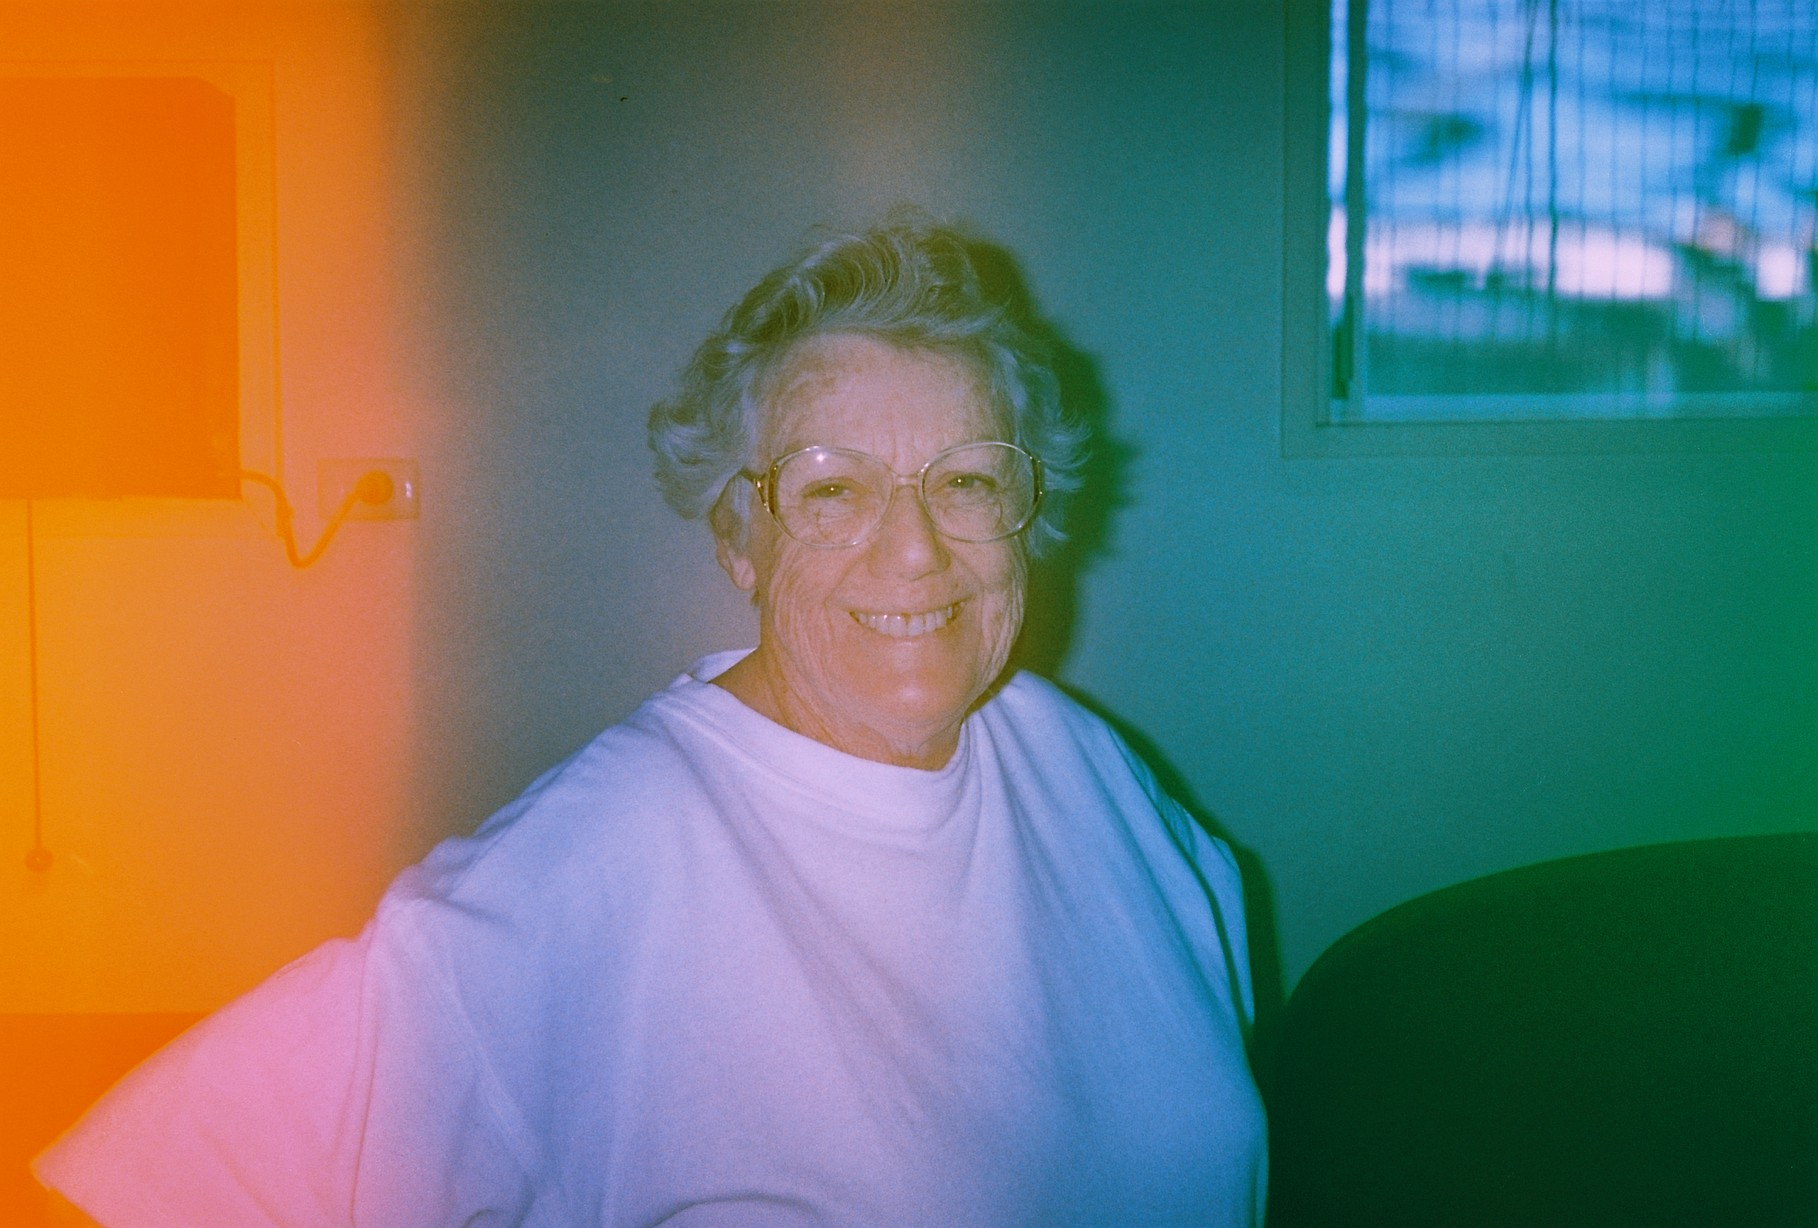 I have no idea who this is but the camera came loaded with some Kodak Gold 100 it must have been old as cause my test roll had no leaks at all. I was super interested to see what was on the previous owners roll but that was it unfortunatly.